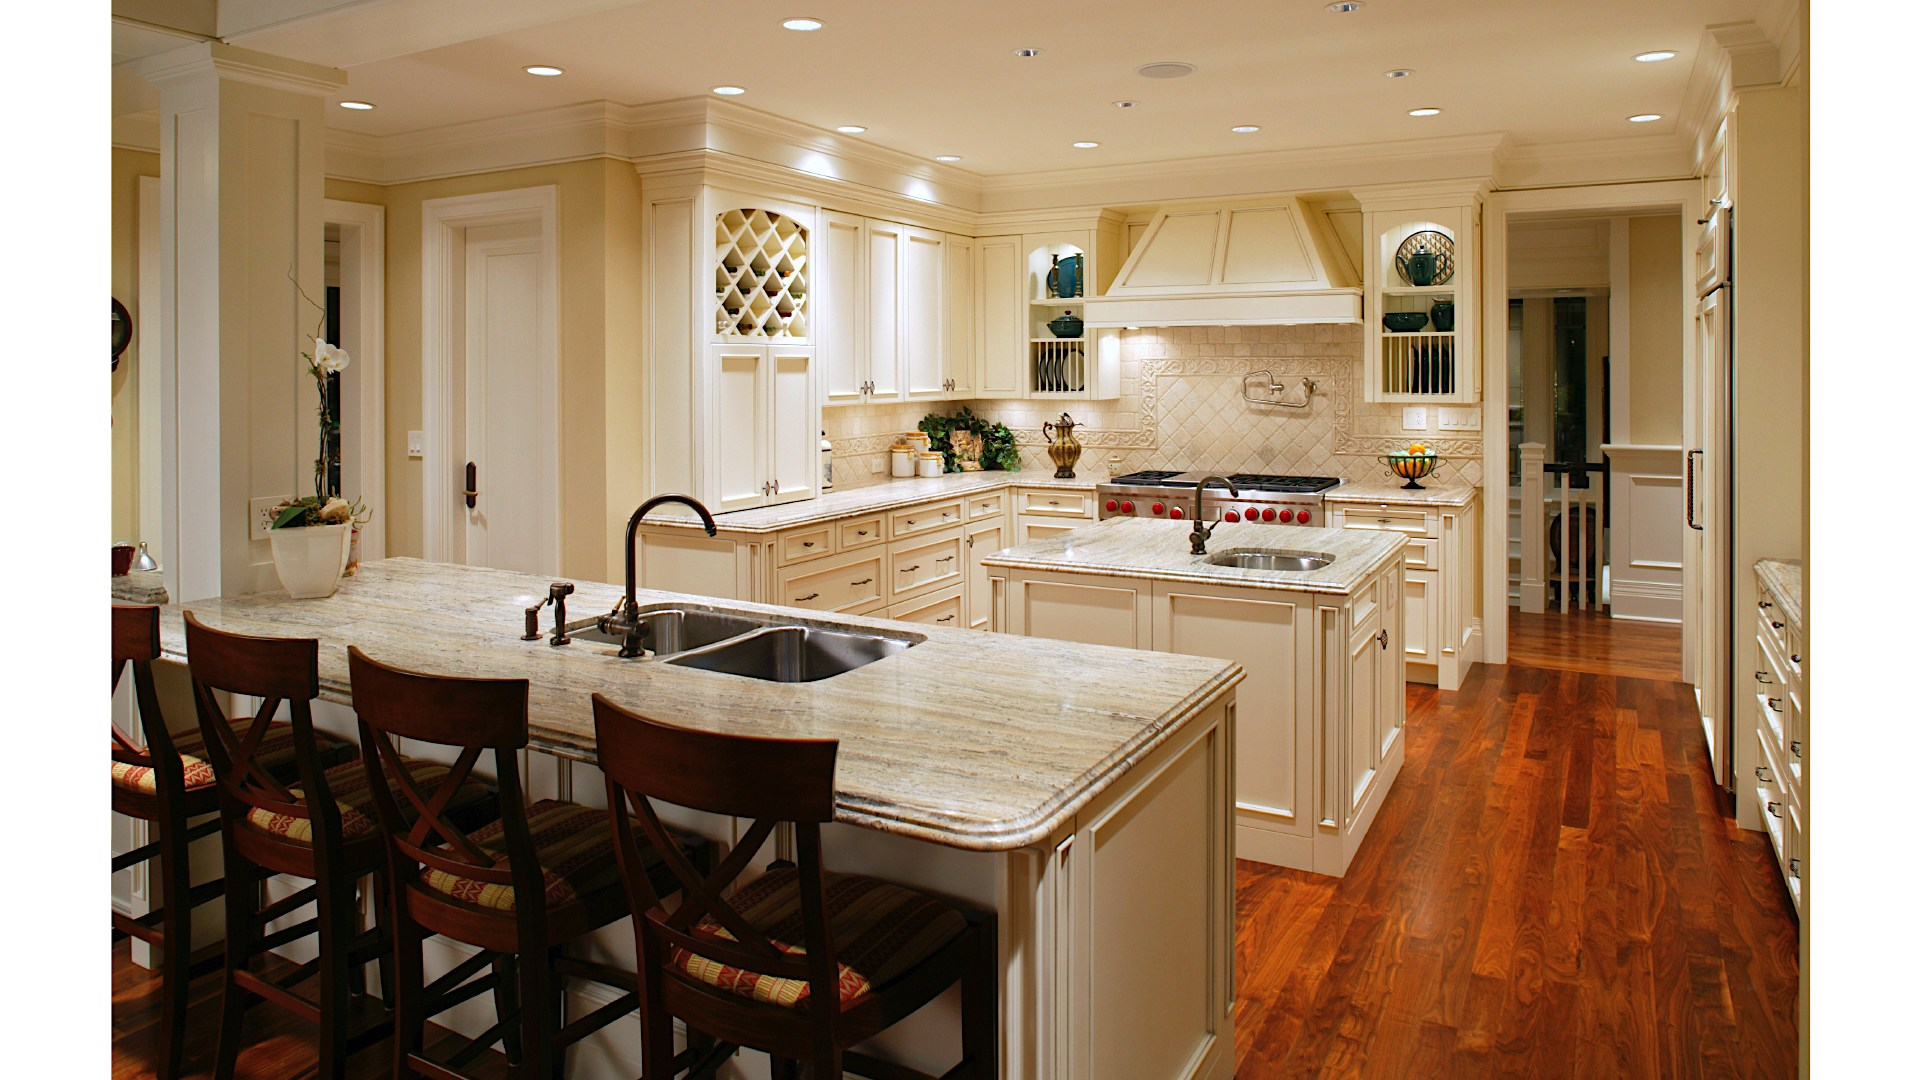 Myles Nelson McKenzie Design-Design & Construction Plans for Kitchen Remodels